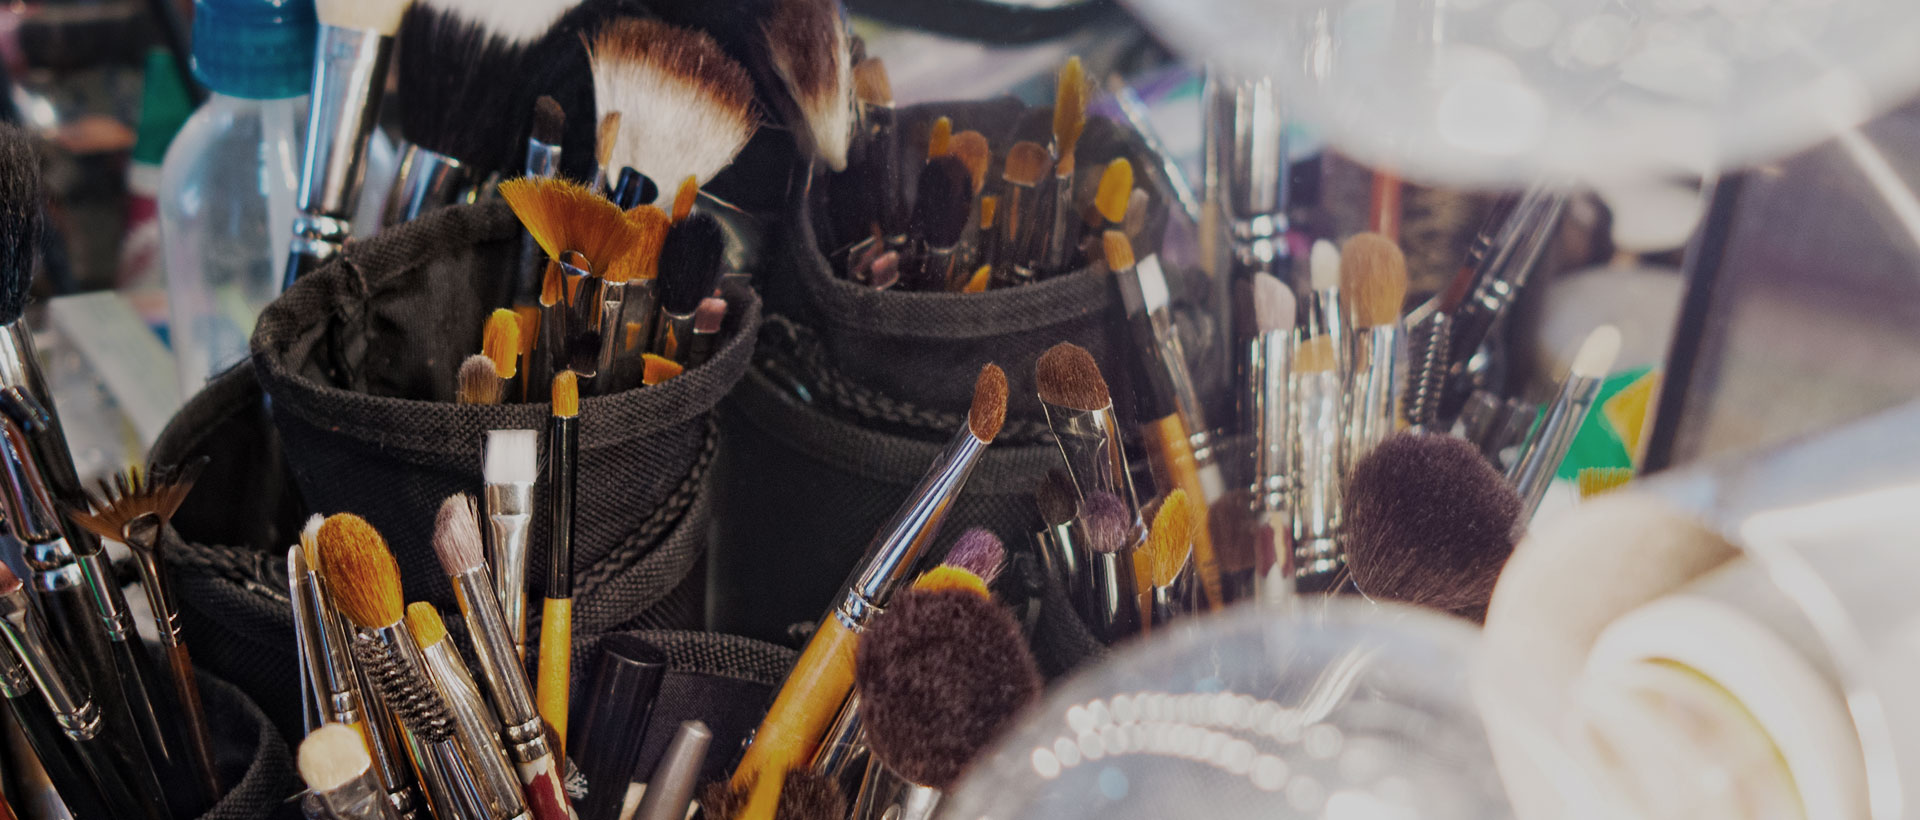 Close up of containers with make up brushes